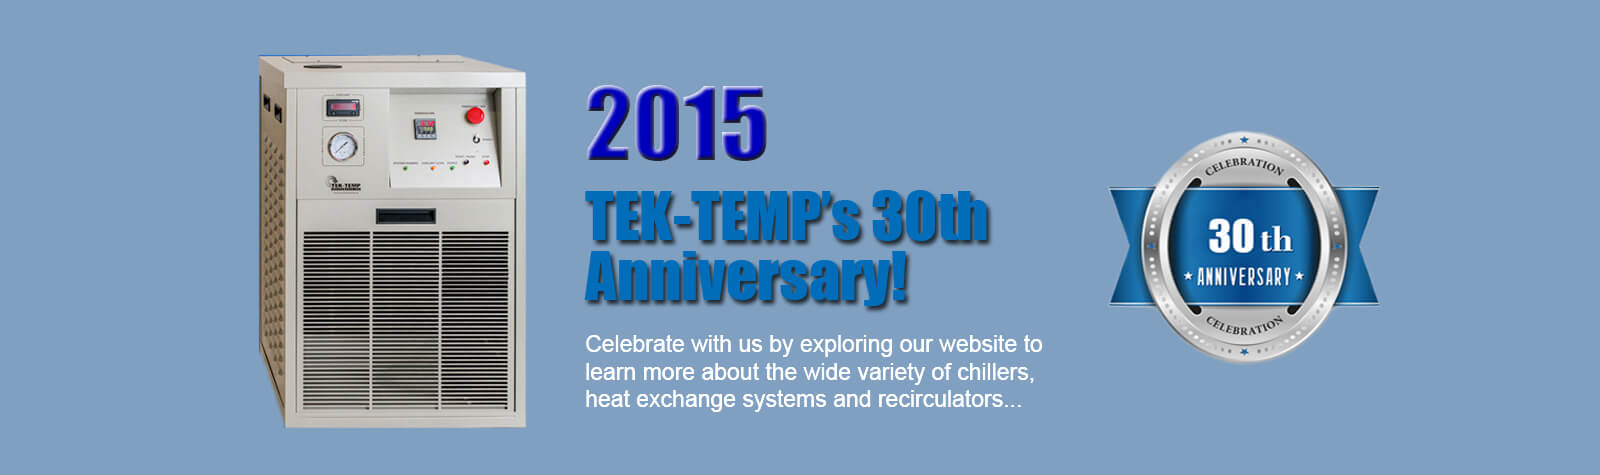 tek-temp-new-slide-anniversary